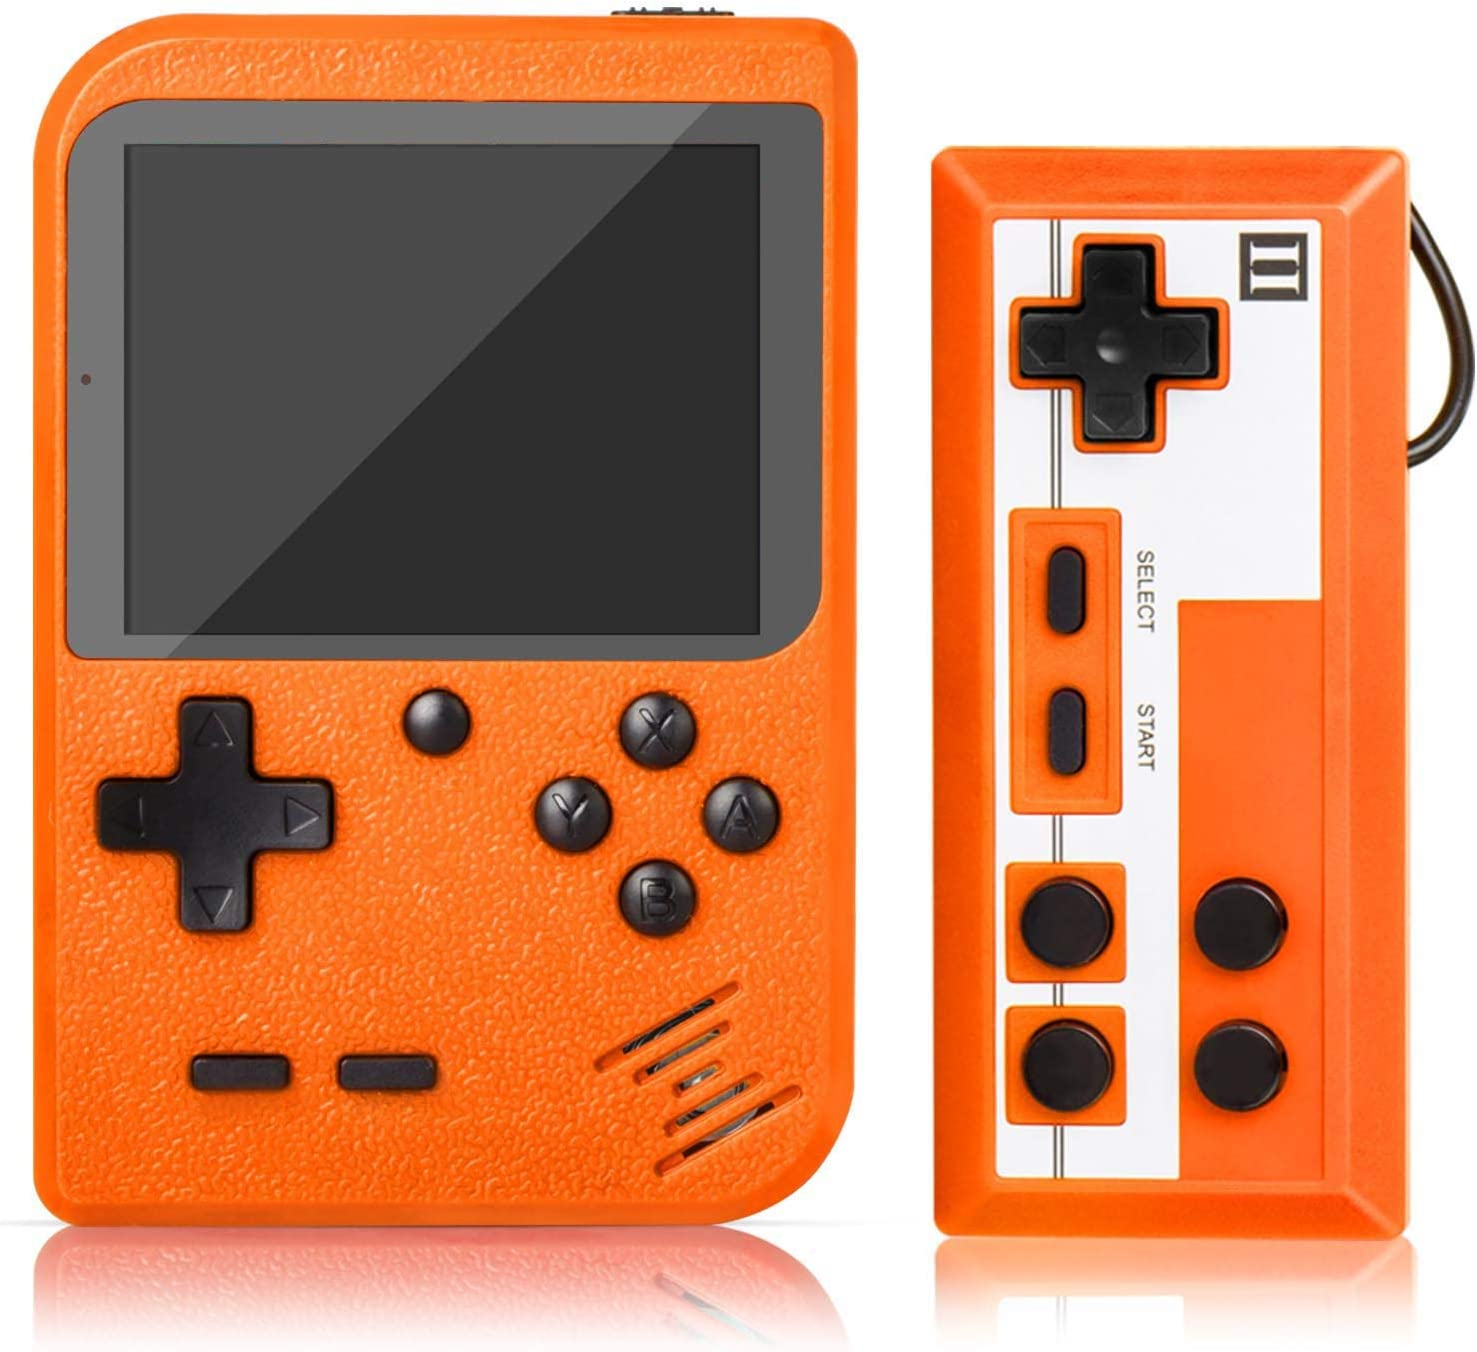 Handheld Game Console, Retro Mini Game Player with 500 Classic FC Games, 3.0 Inch Screen 800mAh Rechargeable Battery Portable Game Console Support TV Connection & Two Players for Kids Adults: Toys & Games